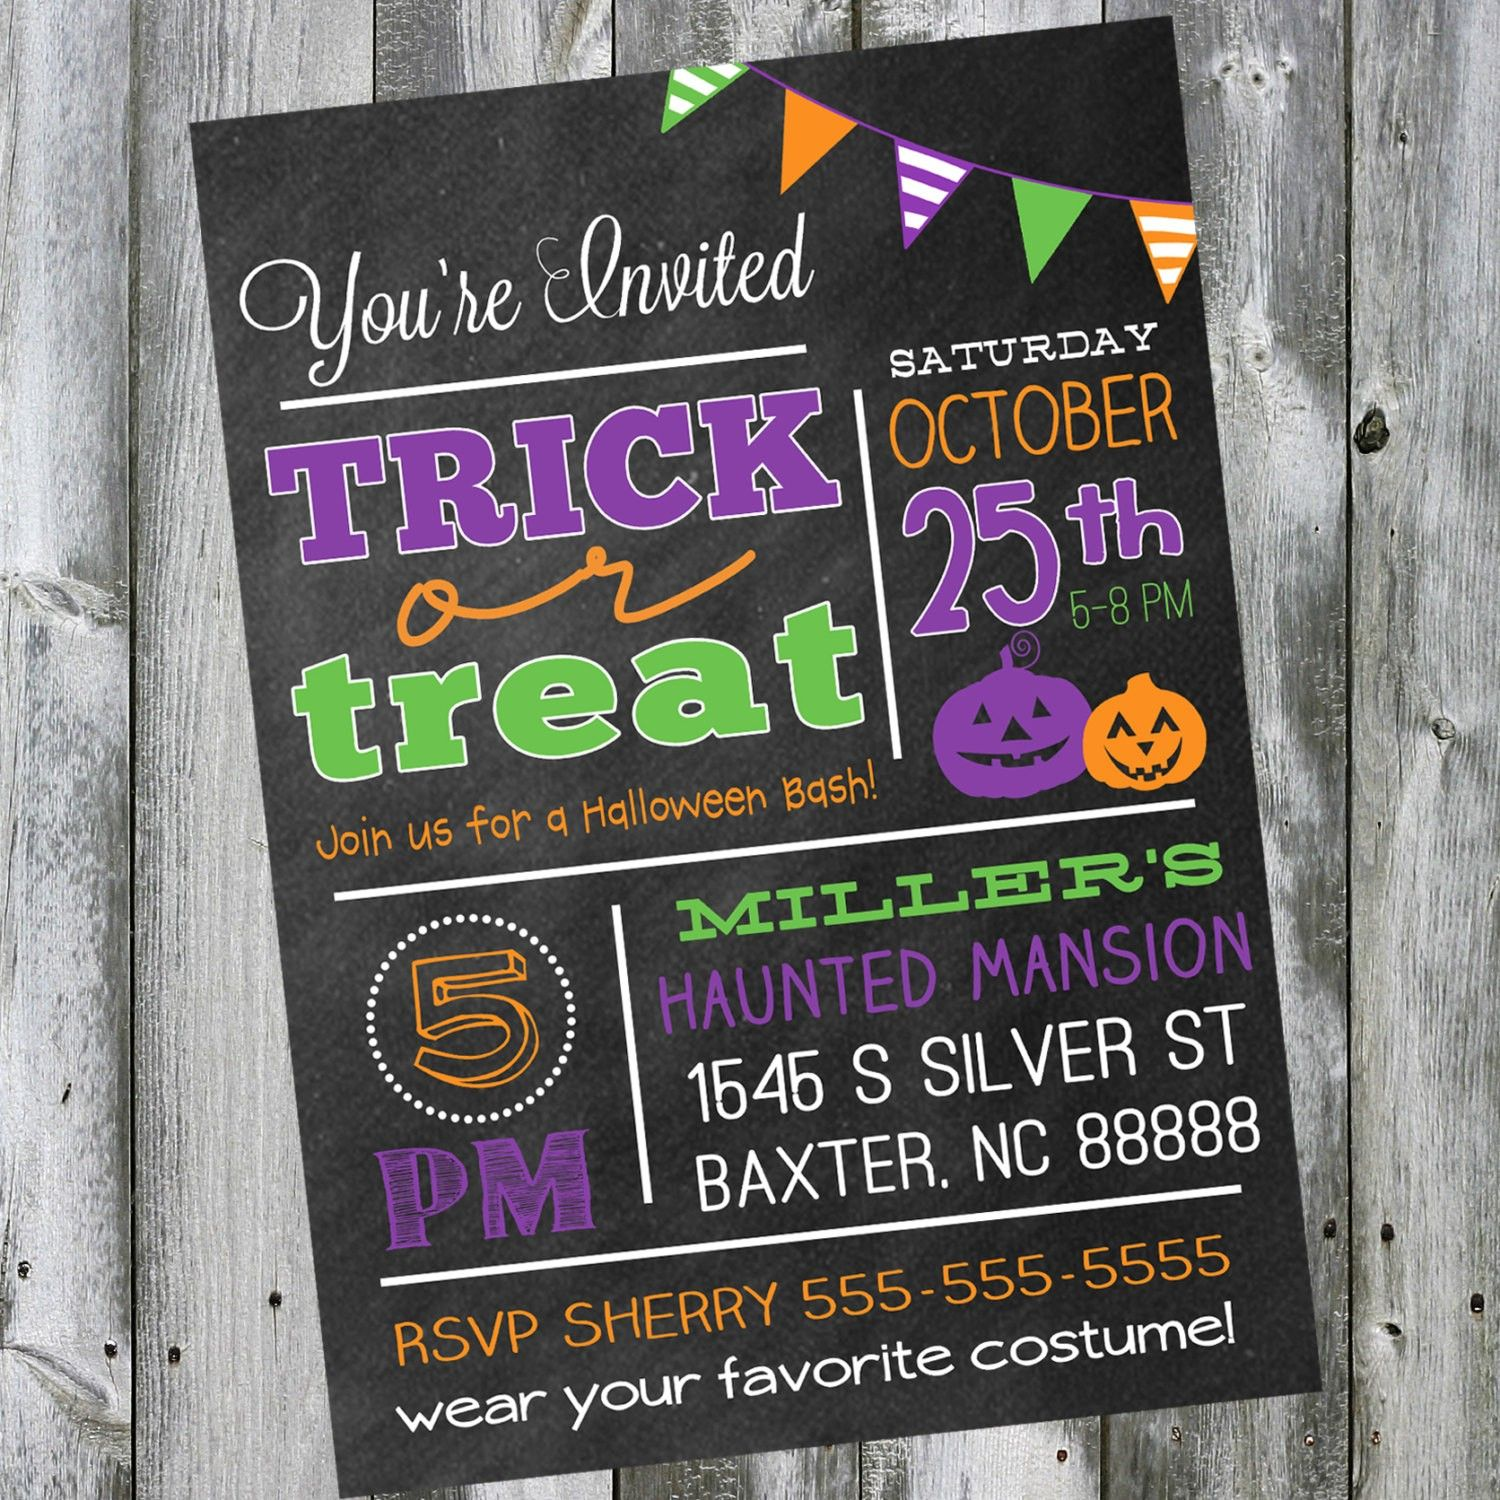 Artistic Halloween Costume Party Invitation christmas card greetings ...